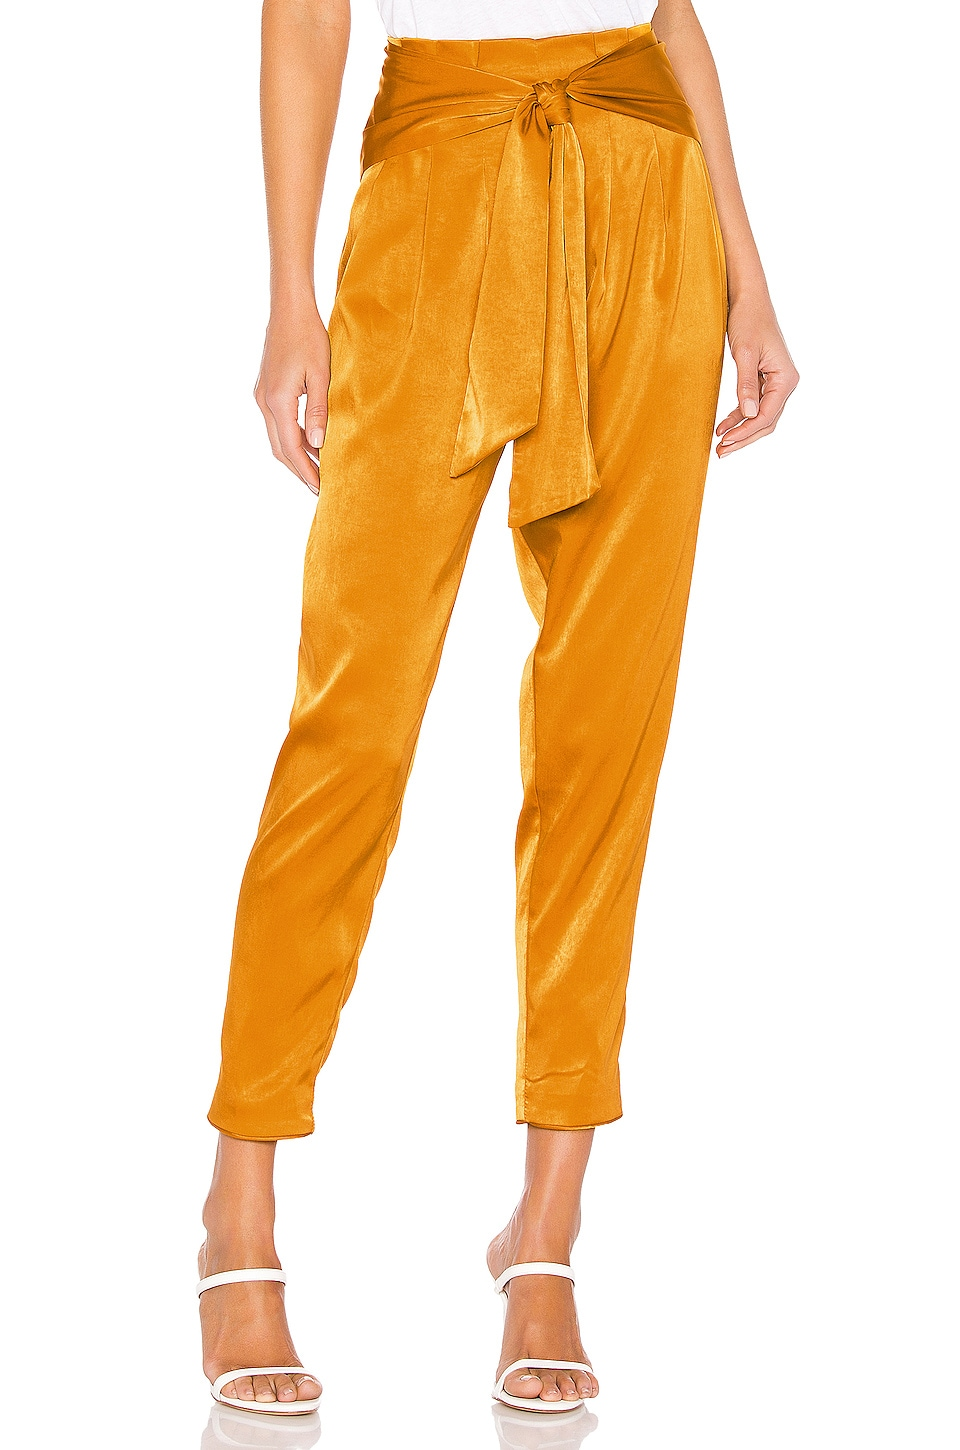 House of Harlow 1960 X REVOLVE Leland Pant in Gold